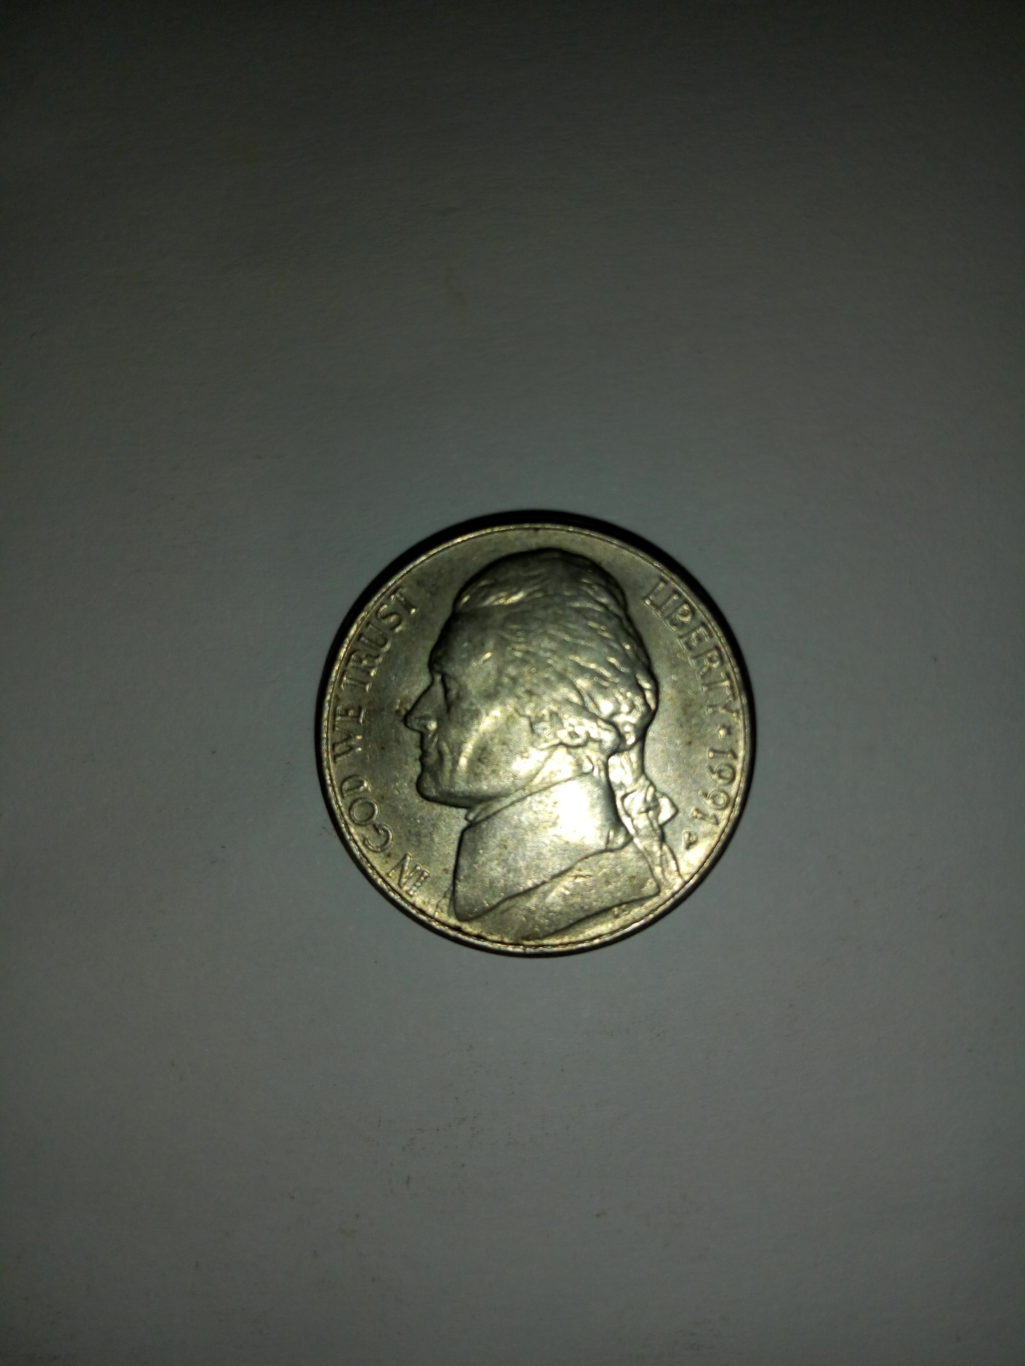 1991_united States of america 5 cents